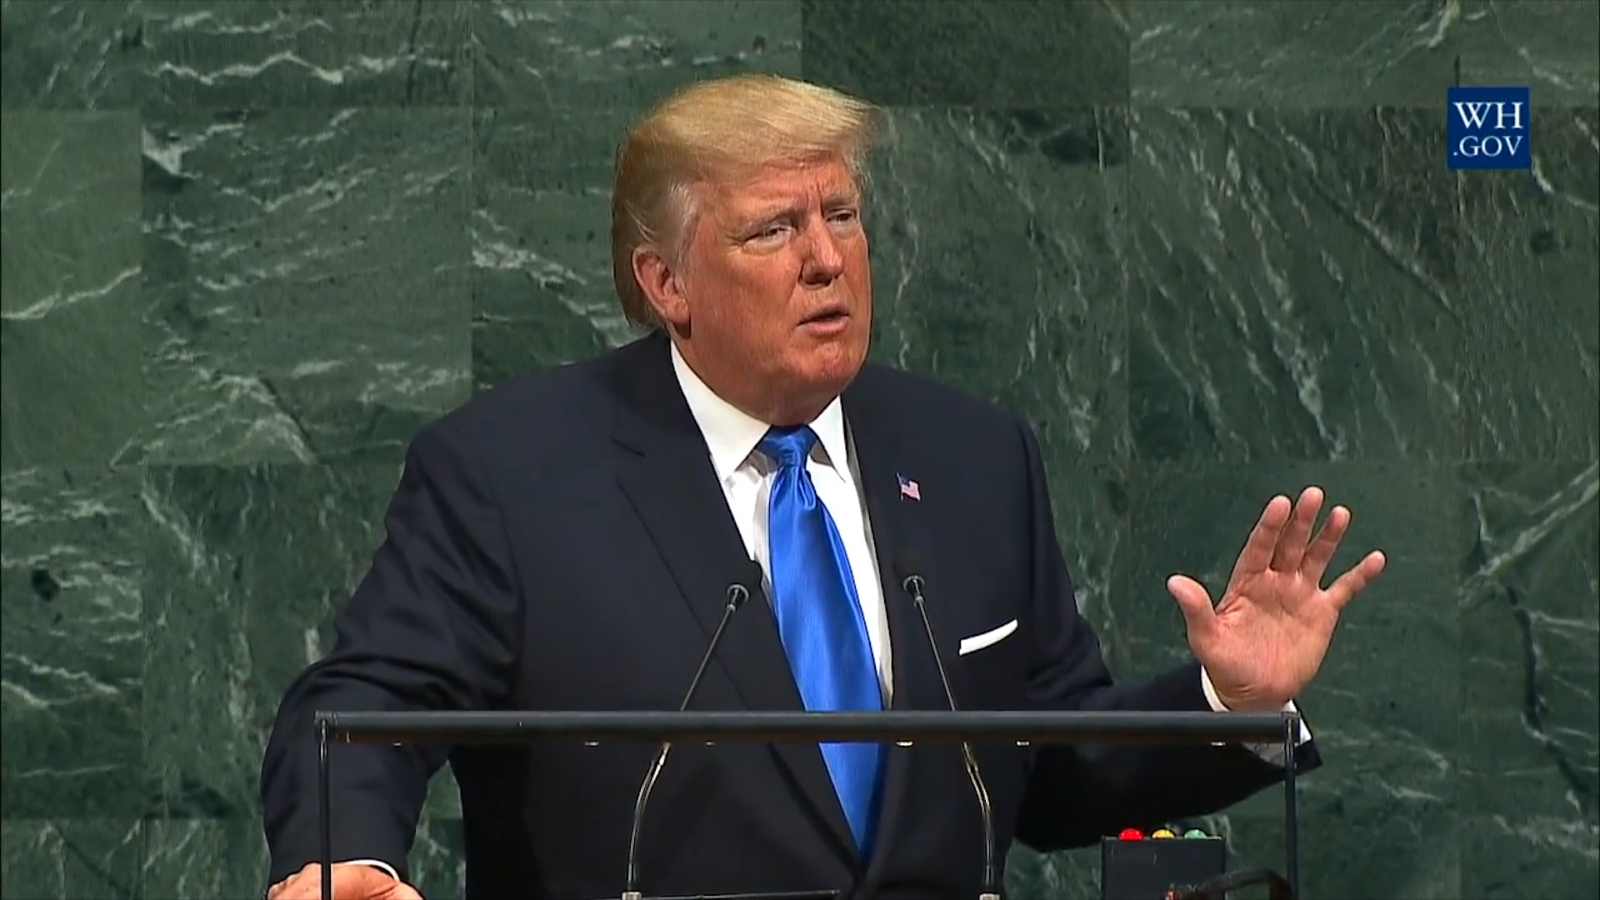 Donald Trump slams 'rogue regimes' during his maiden UN speech